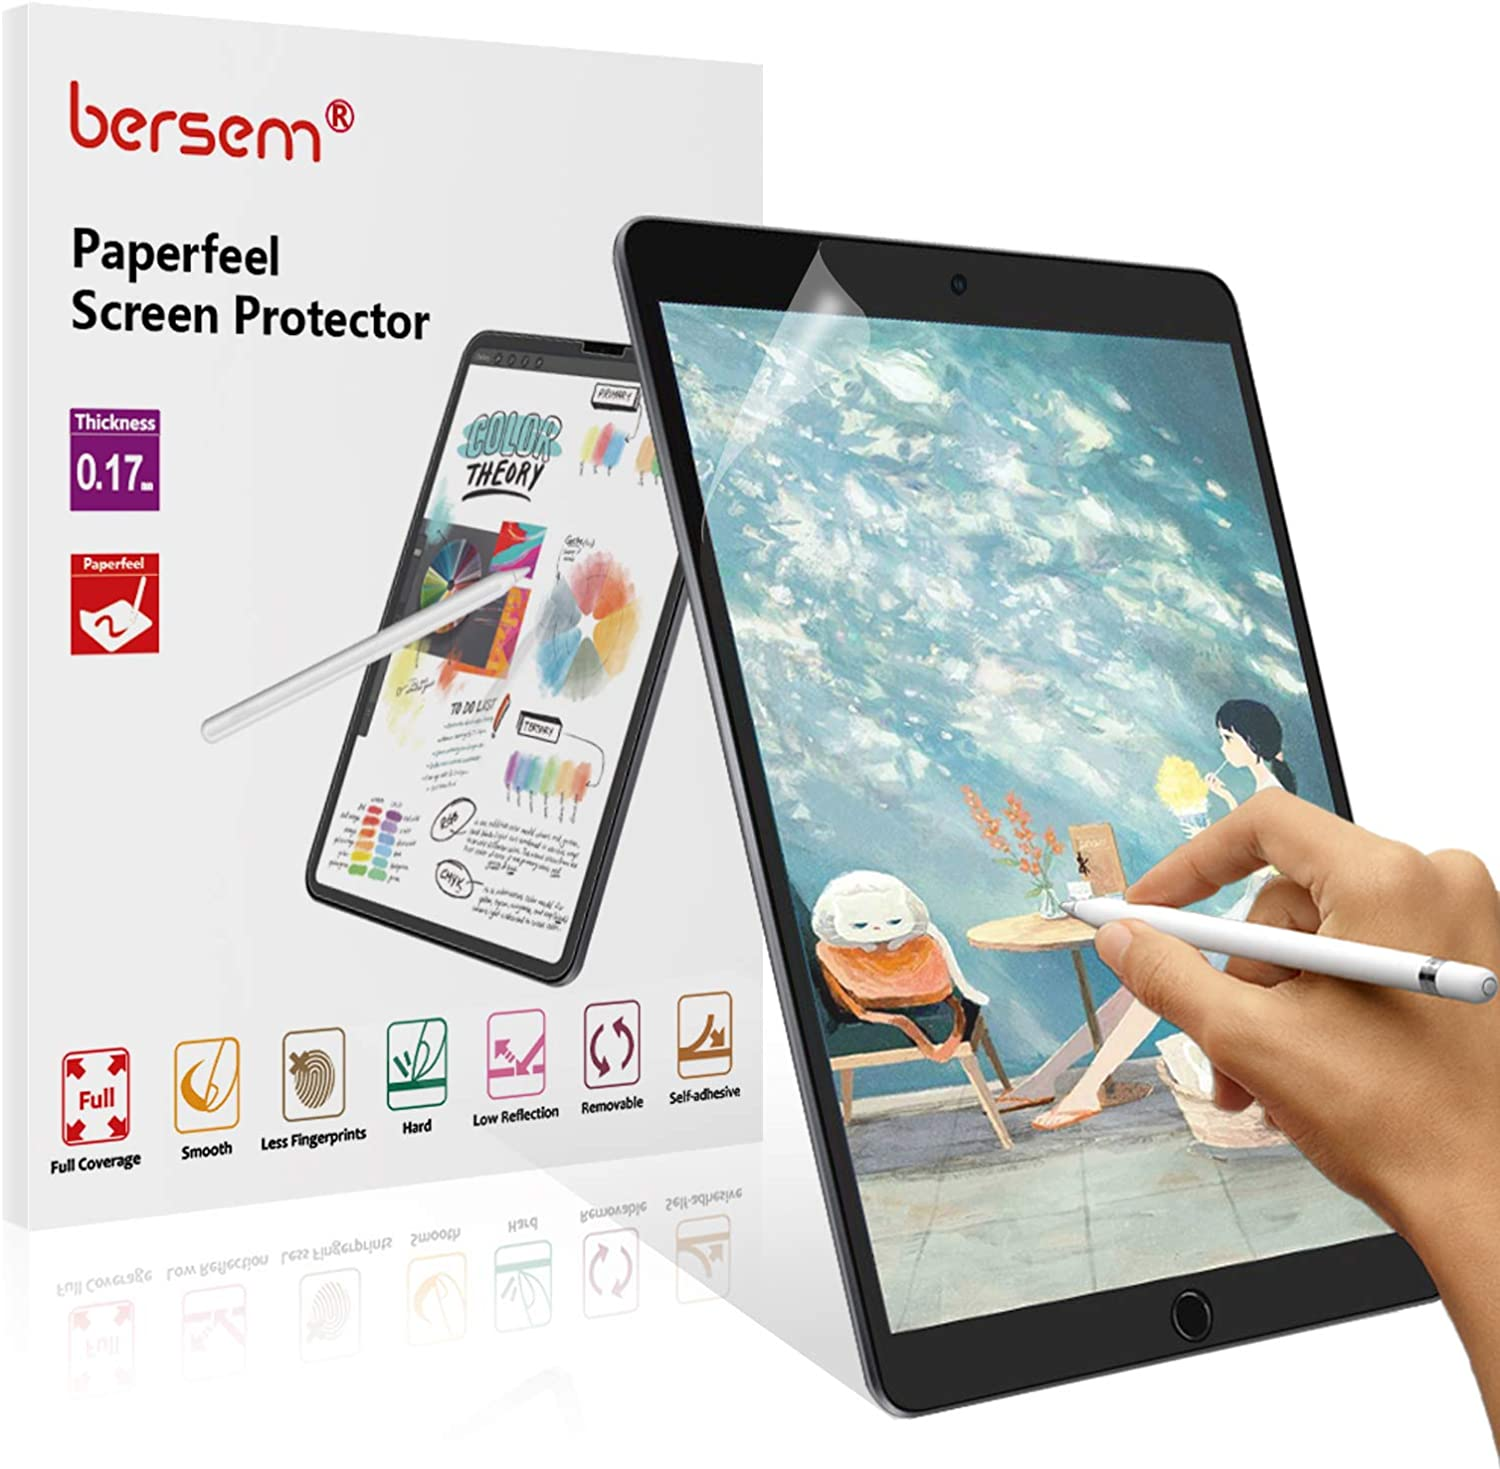 BERSEM[2 Pack]Paperfeel Screen Protector for iPad Air 2019 / iPad Pro 10.5, iPad Air 3 Paperfeel Film Anti Glare Scratch Resistant Paperfeel Protector for iPad Pro 10.5 inch